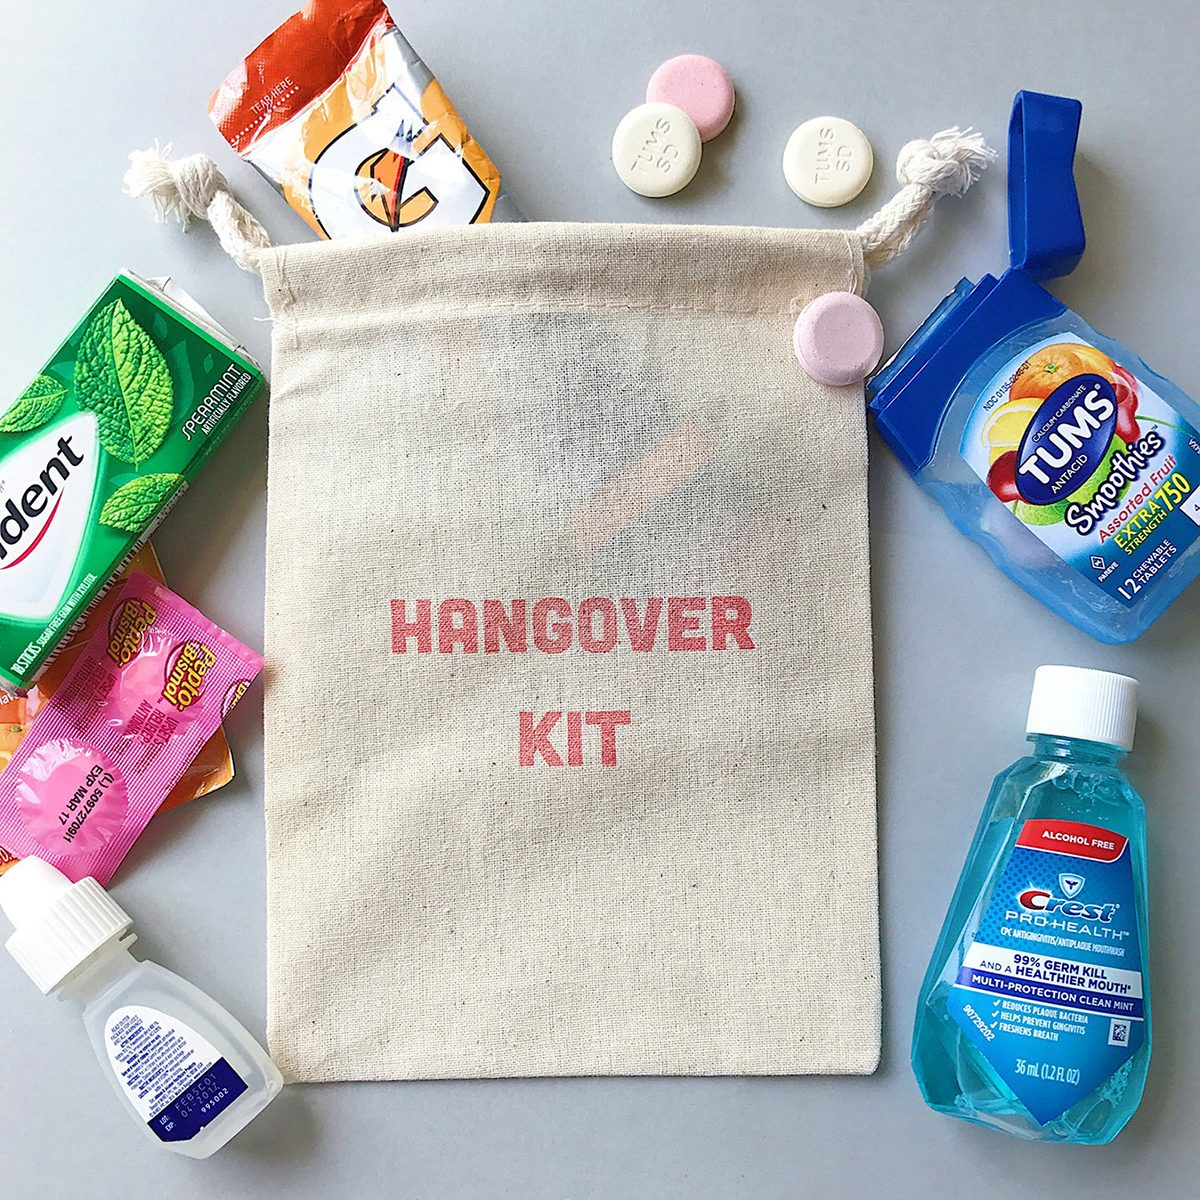 HANGOVER KIT adult party